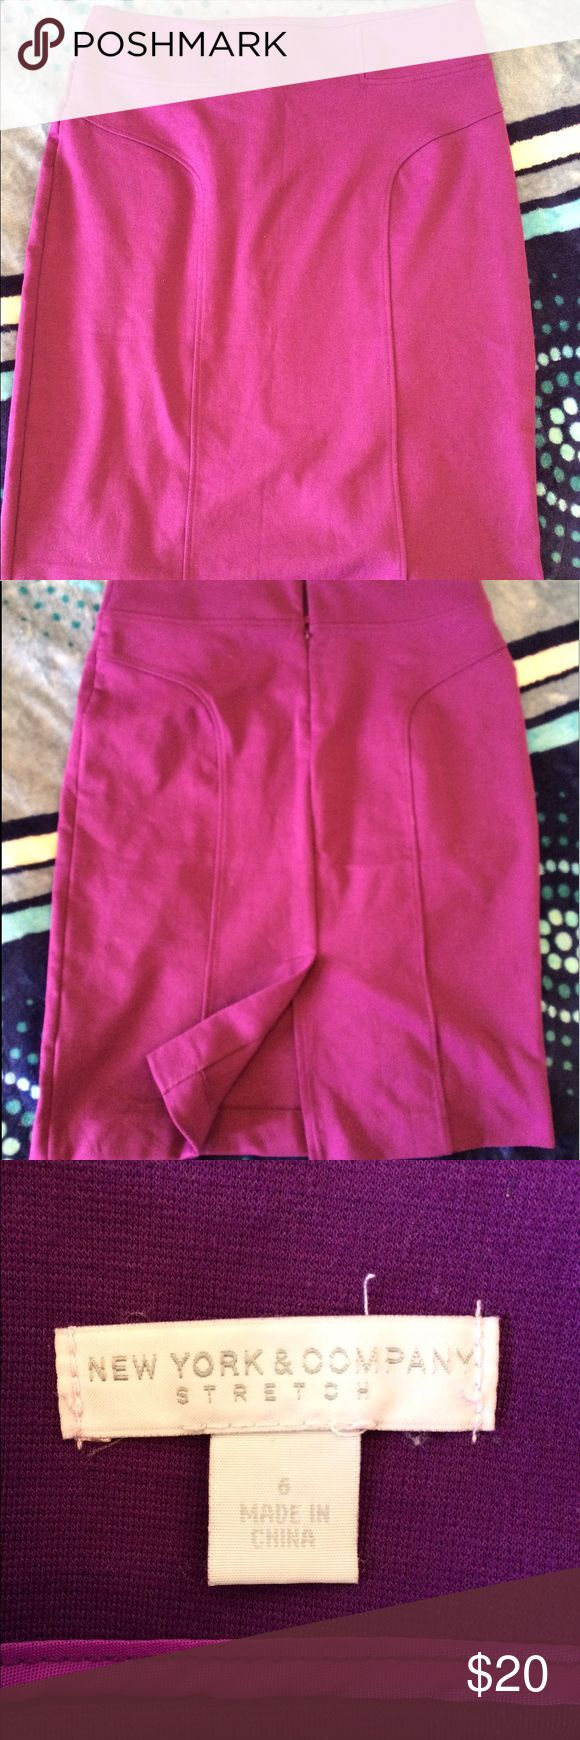 Purple Stretch Skirt Purple Stretch Skirt New York & Company Skirts High Low